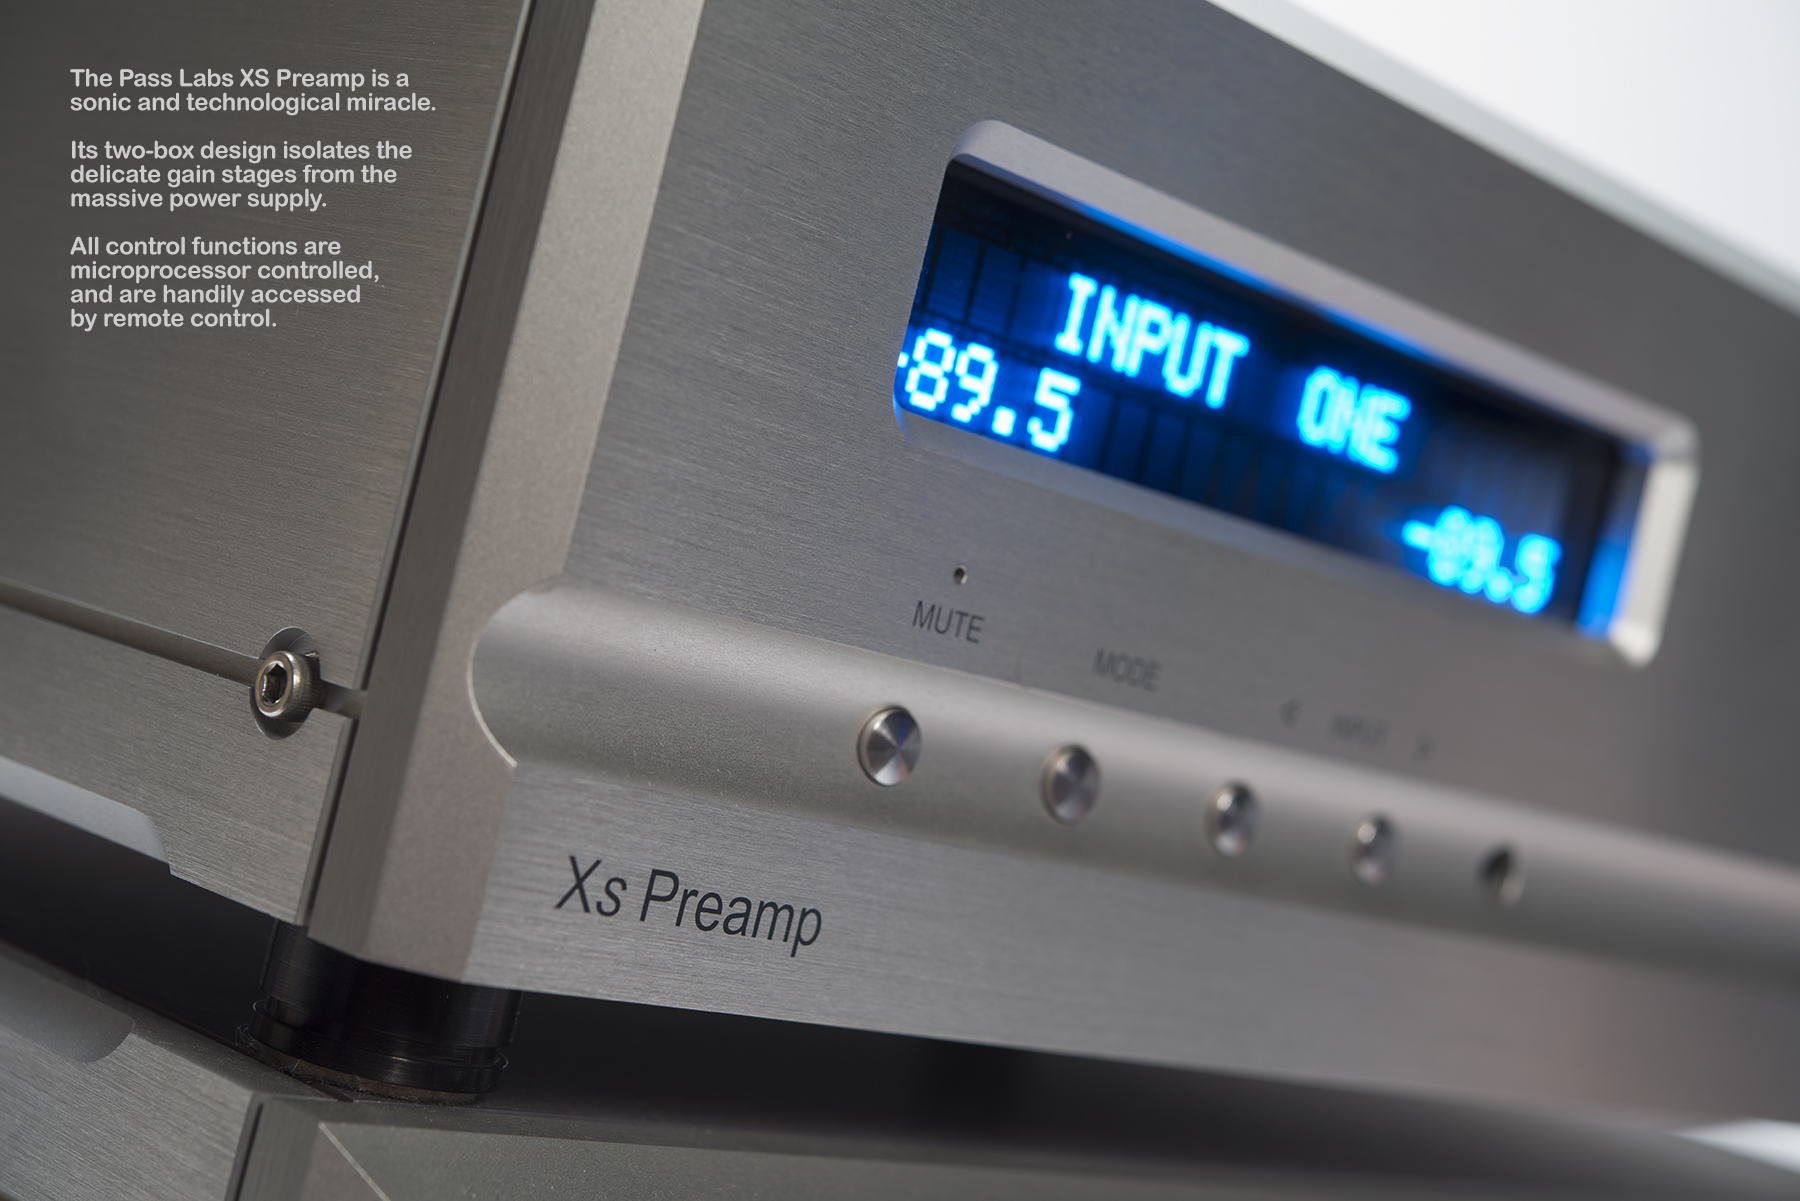 Pass Labs XS Preamp